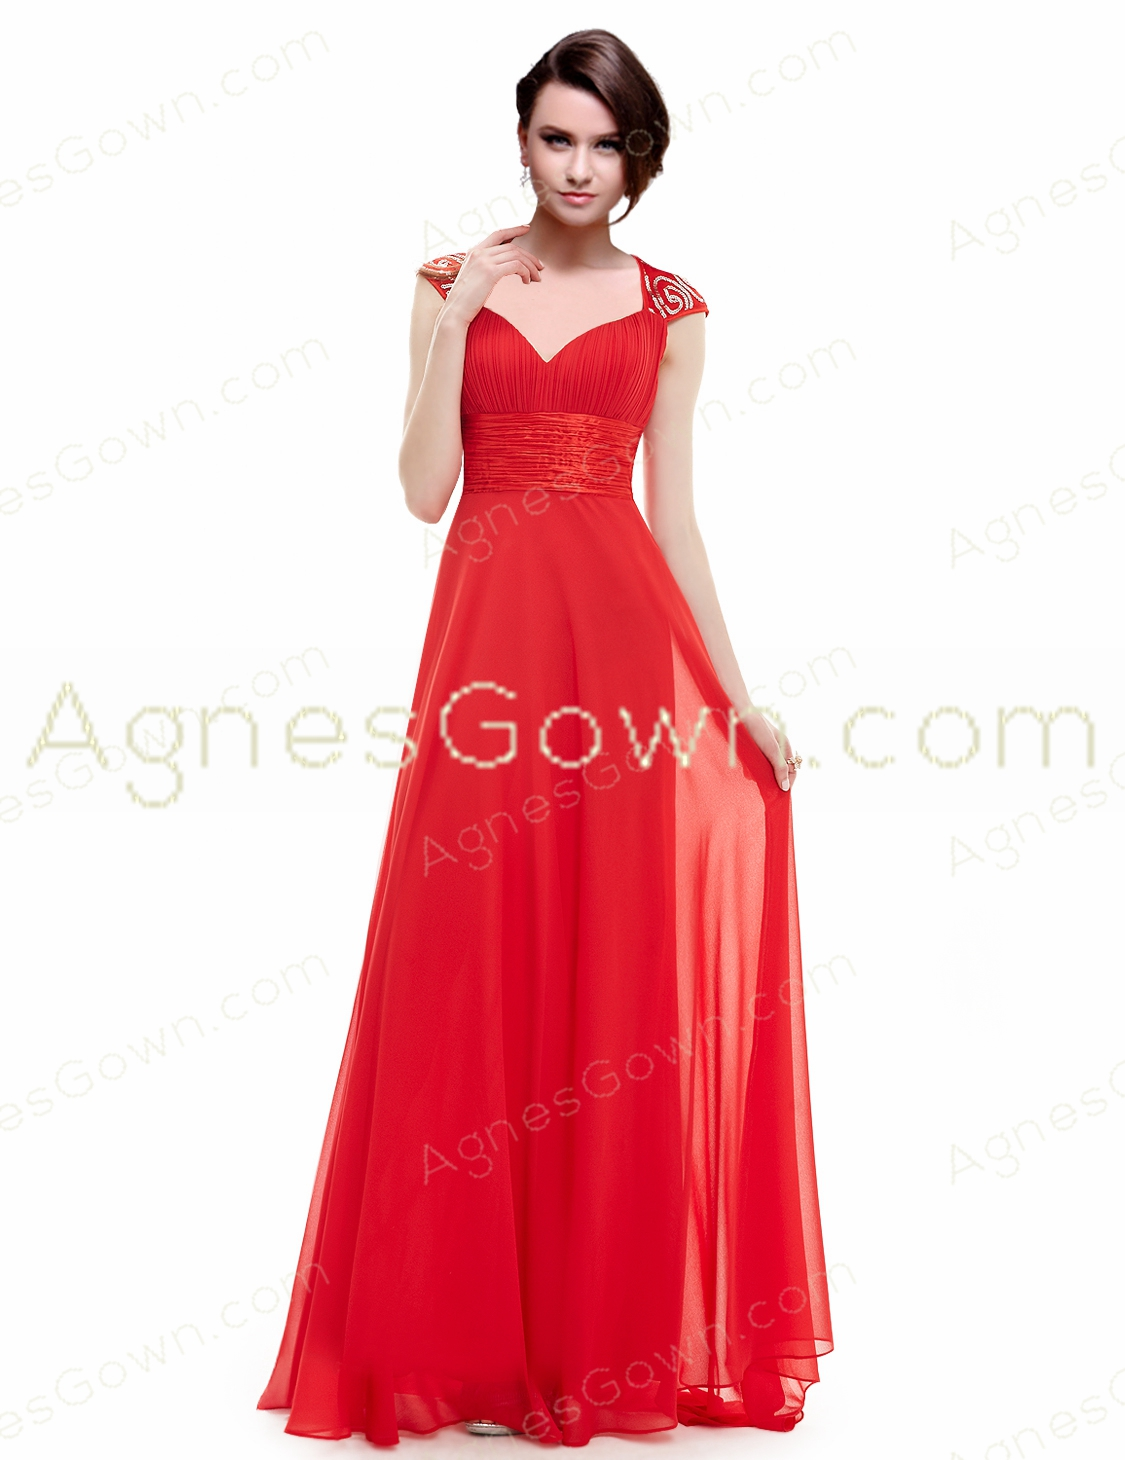 Straps A-line Full Length Red Prom Gown Dress